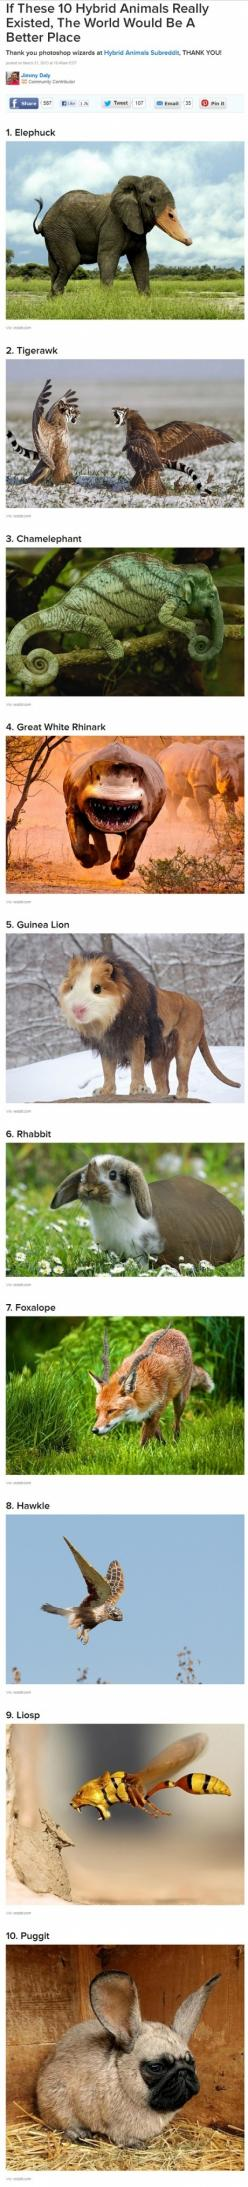 56610.jpg (460×4057): Animals, Guinea Lion, Stuff, Awesome, Funny, Funnies, Humor, Animal Hybrids